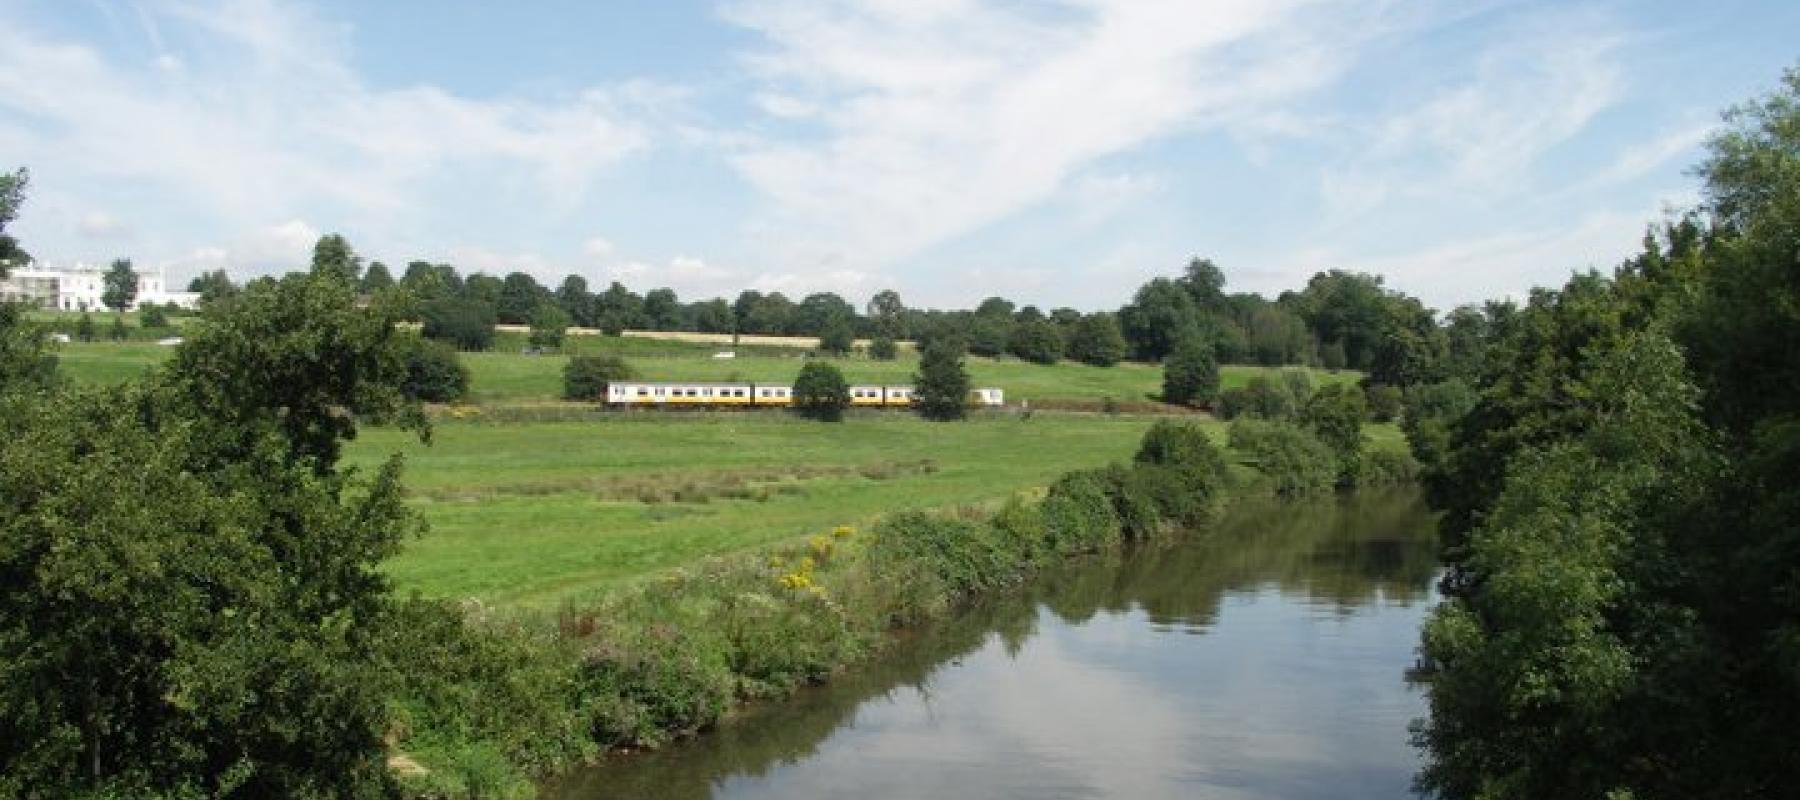 Train travelling through the countryside along the Medway Valley railway line. South East UK.